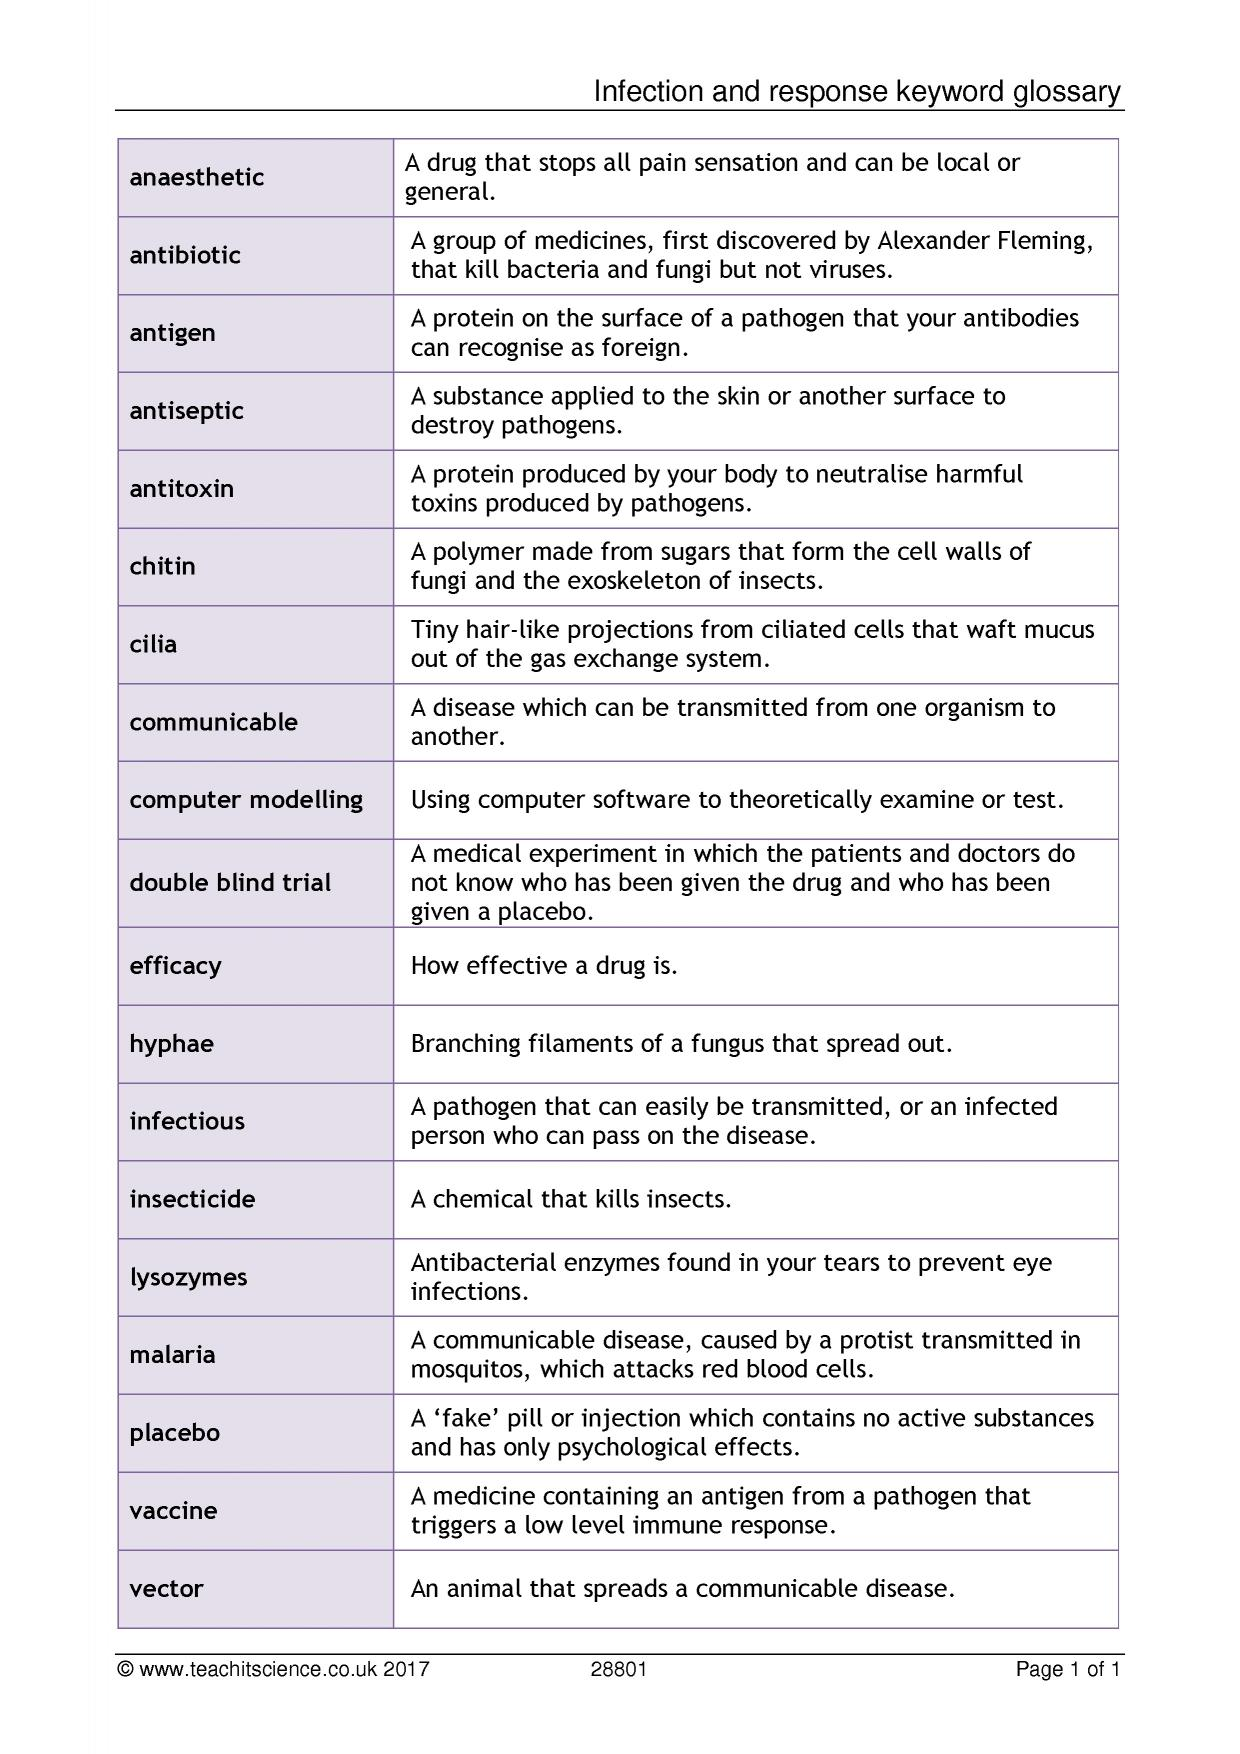 Infection And Response Keyword Glossary